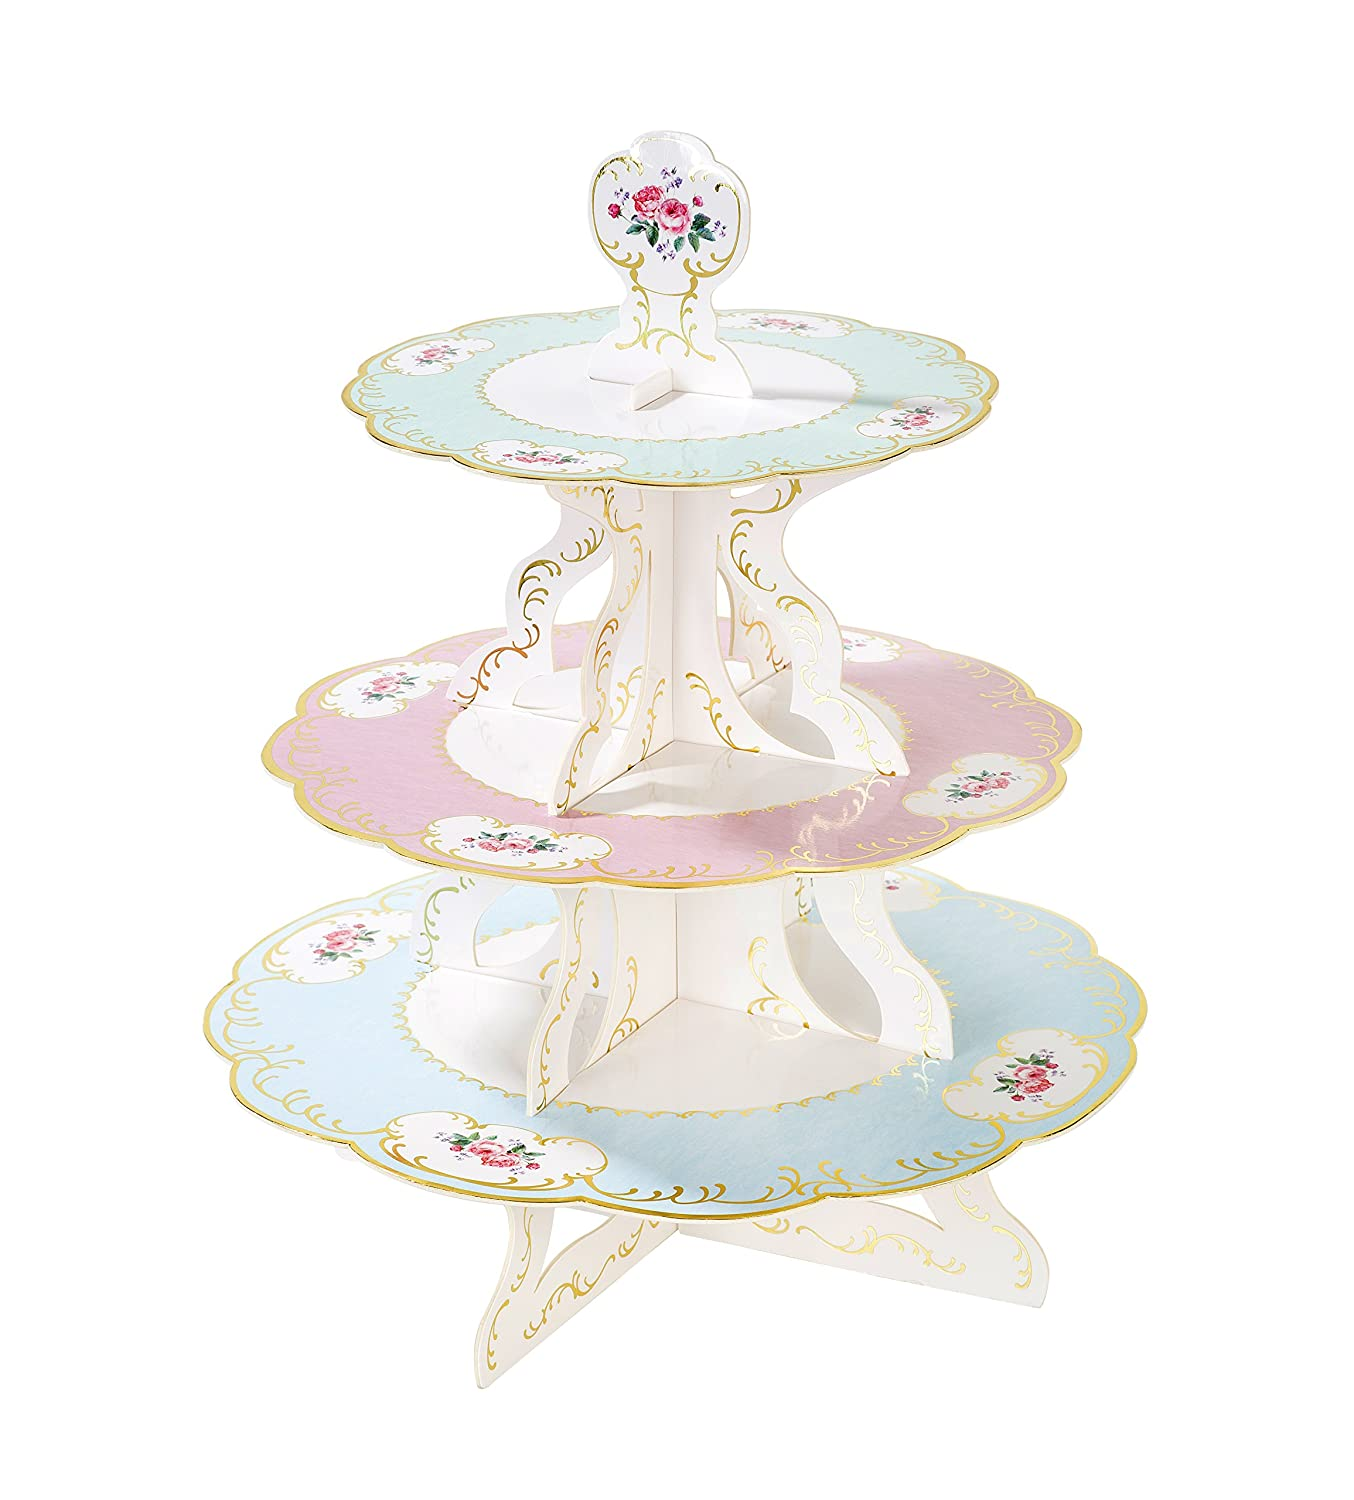 Talking Tables Truly Chintz 3 Tier Reversible Cake Stand (H36 x W30cm) TSCHINTZ-CAKESTAND